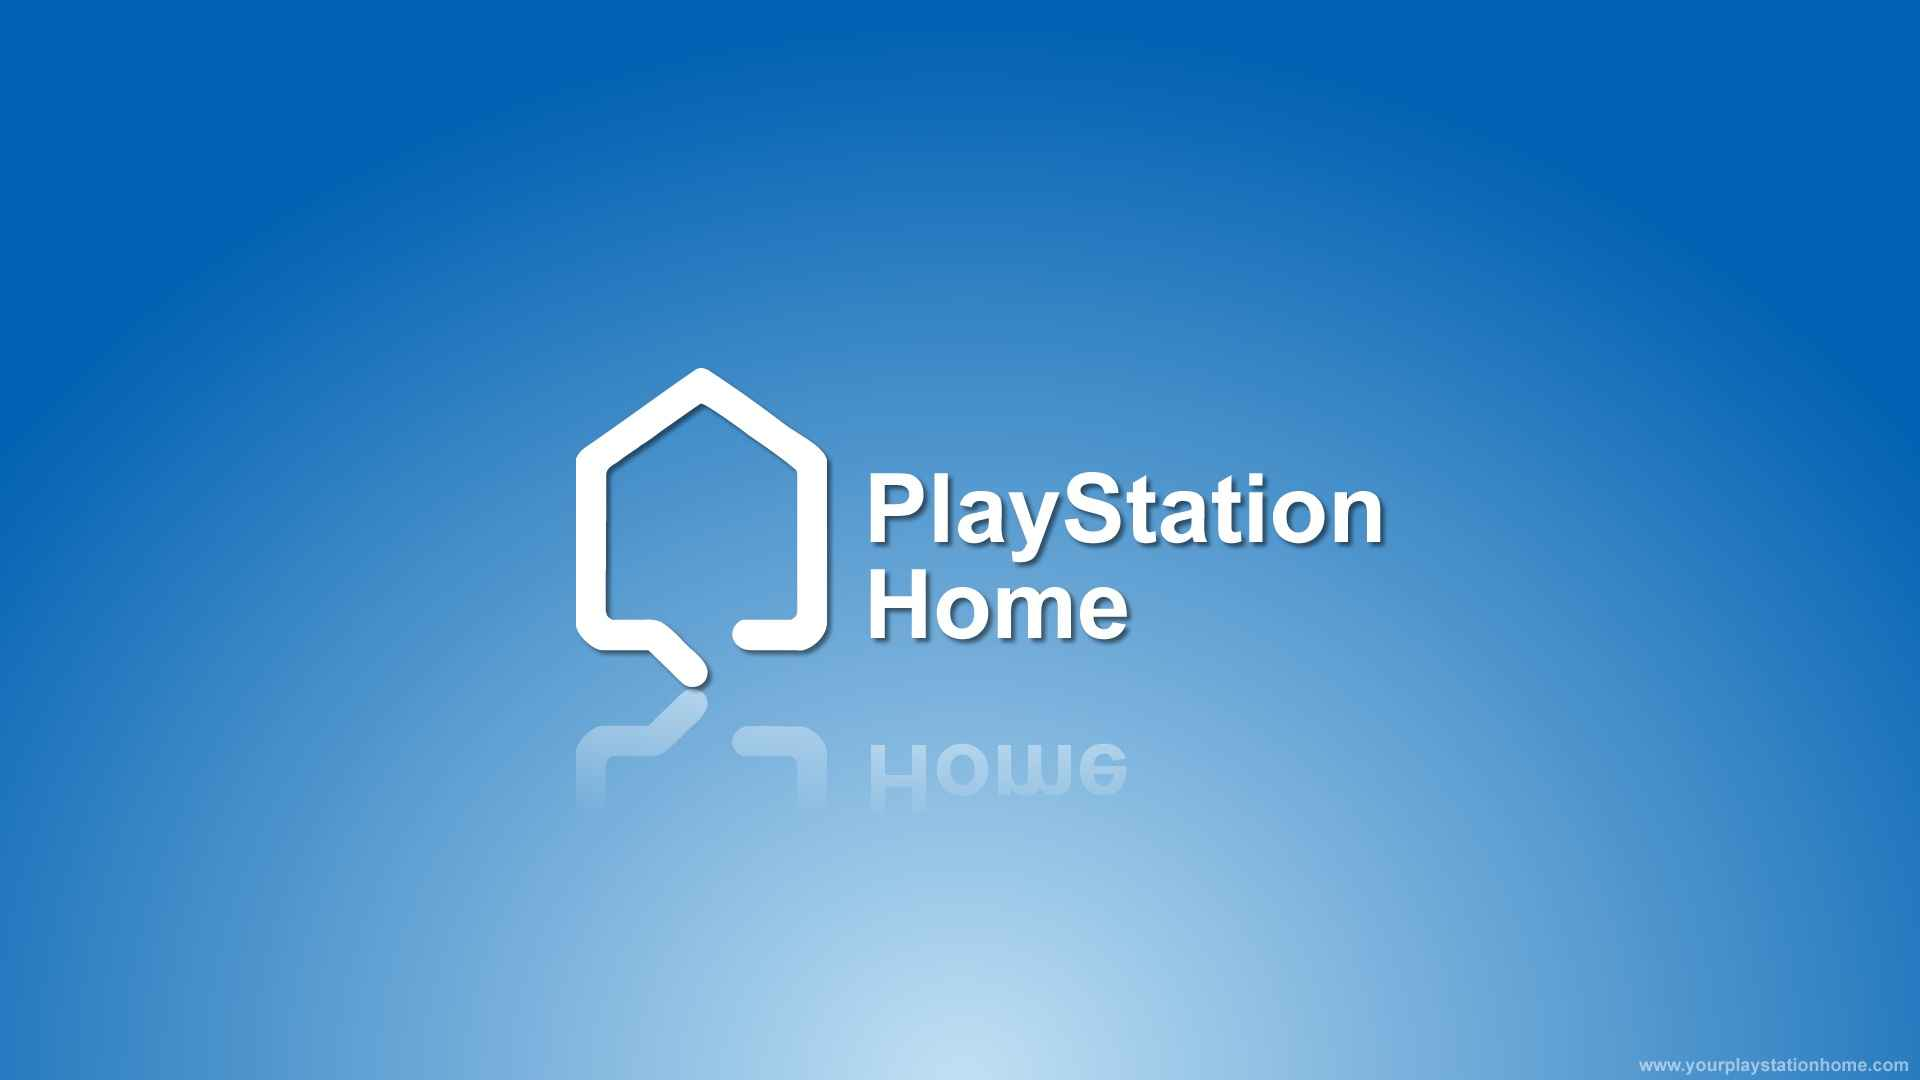 London Studio - PlayStation Home